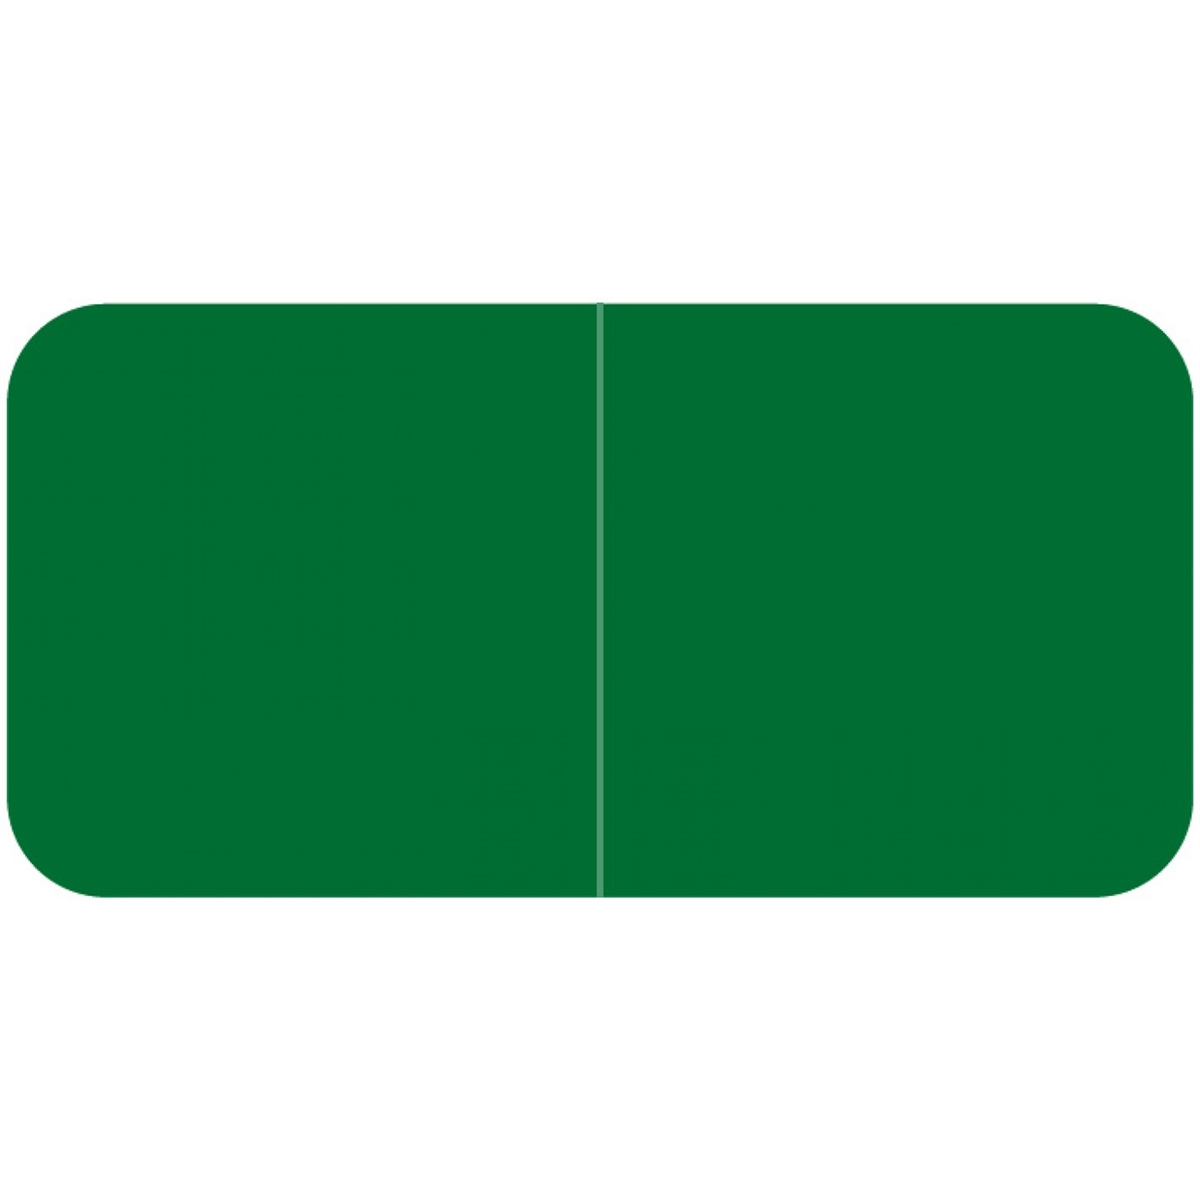 Laminated 3//4H x 1-1//2W Green Solid Designation Label Jeter Compatible Roll of 500